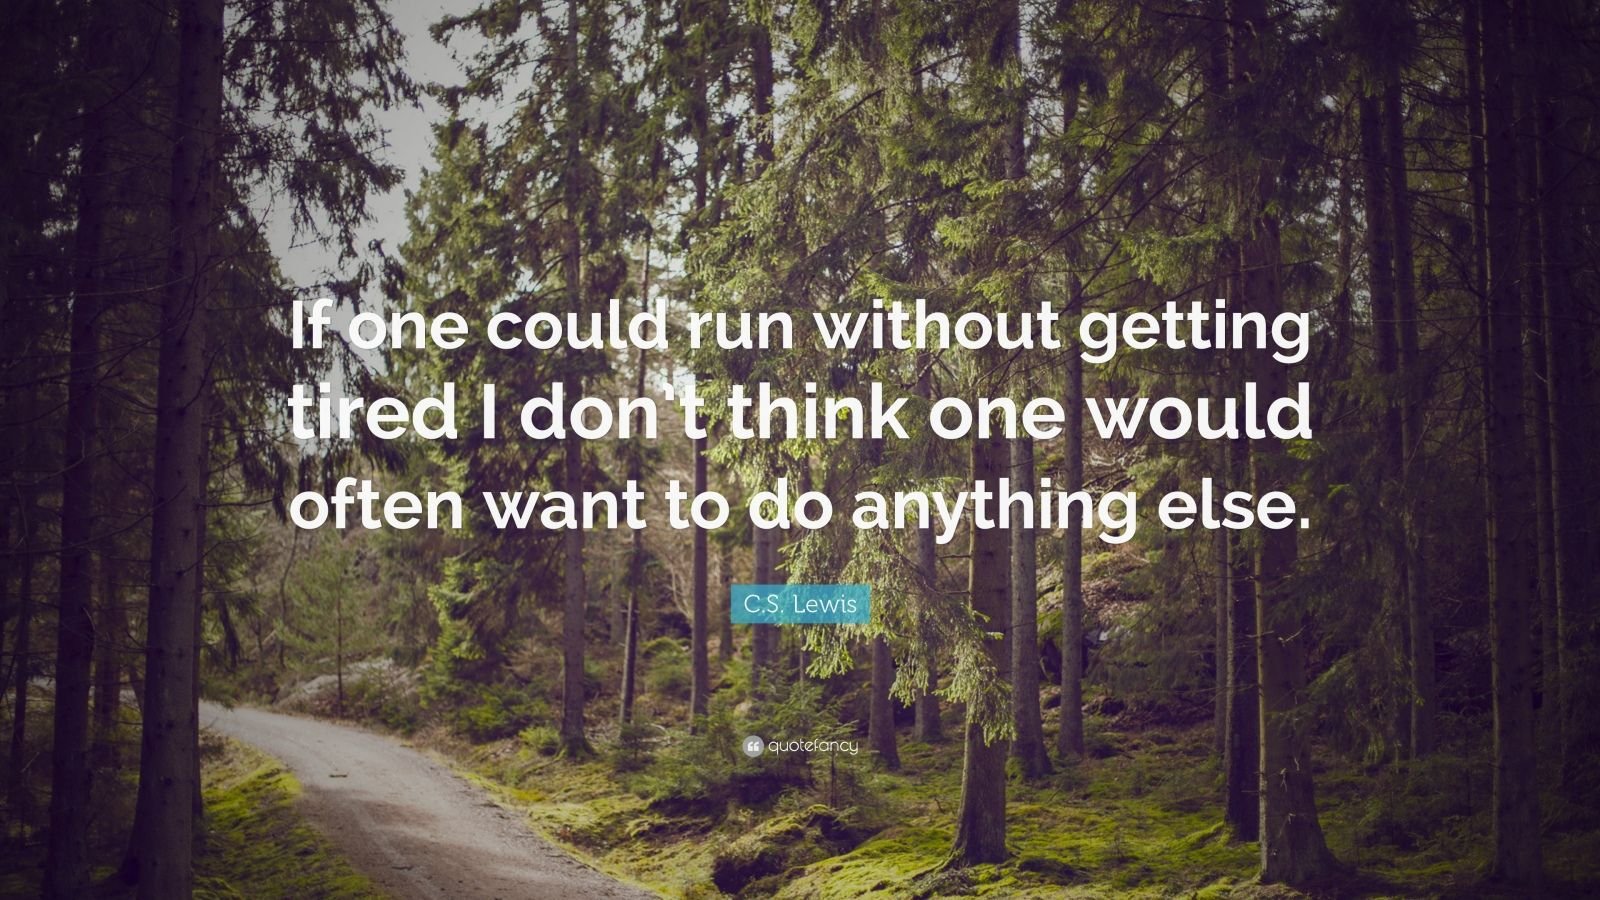 """C. S. Lewis Quote: """"If one could run without getting tired I don't think one would often want to do anything else."""""""